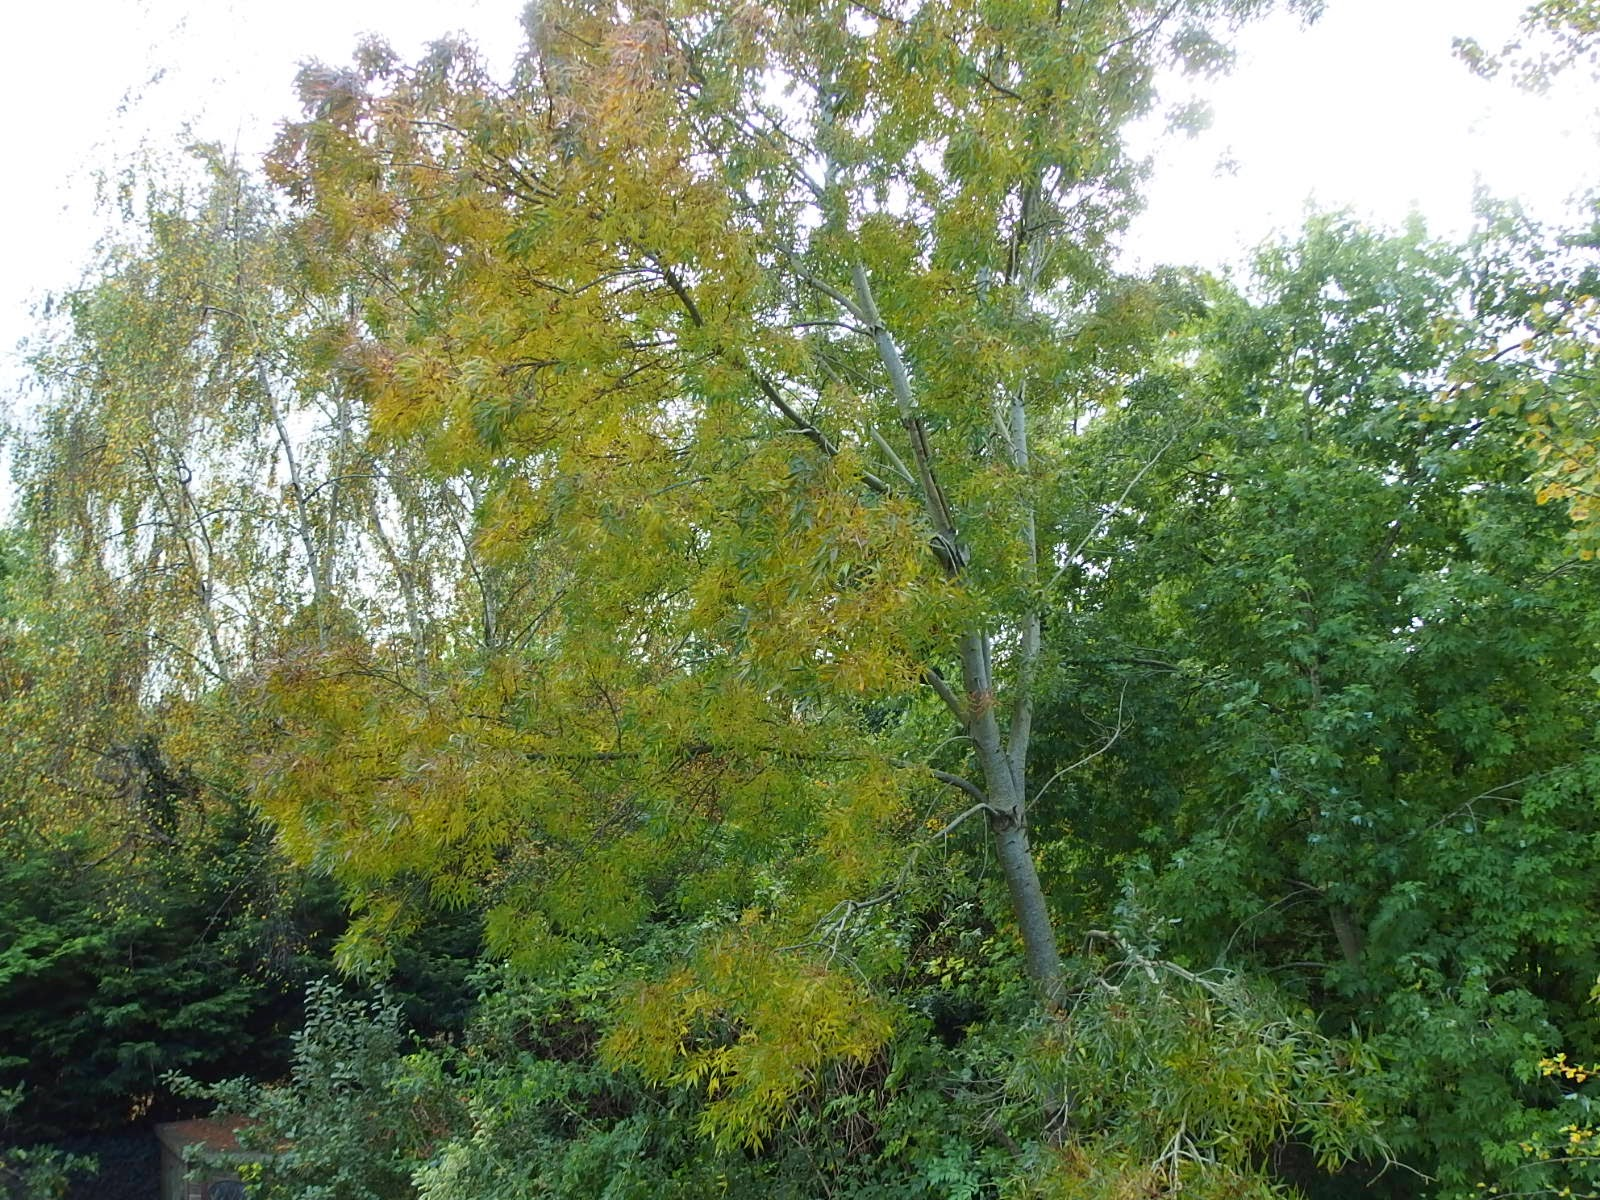 Photo of ash tree beginning to turn autumnal October 2014